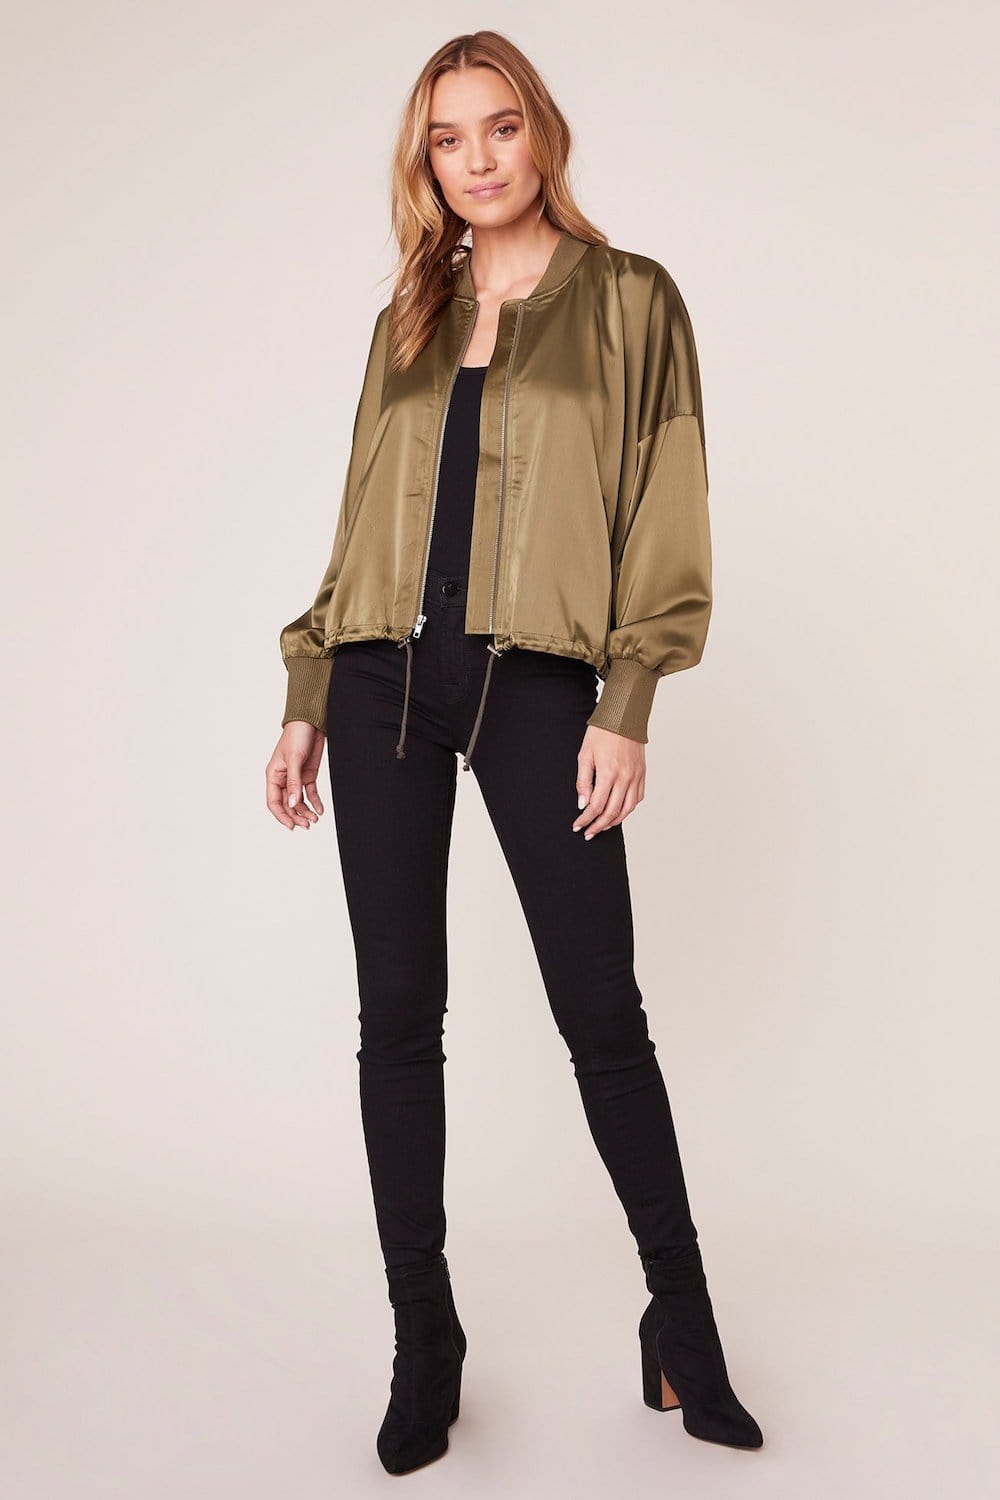 Jack by BB Dakota Shoulder On Duty Satin Bomber Jacket | Wild Dove Boutique | San Diego, CA